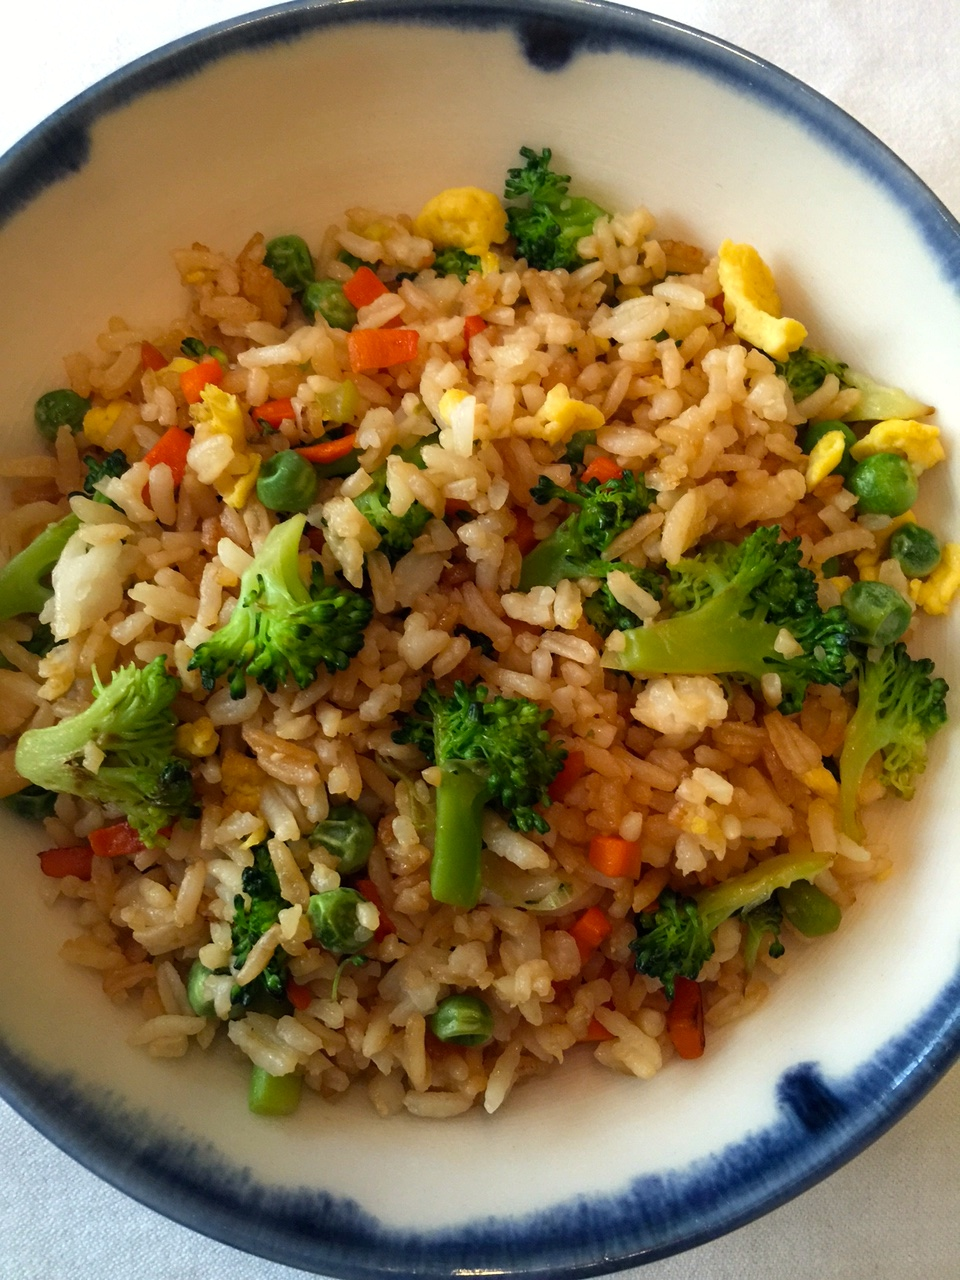 2nd plated fried rice